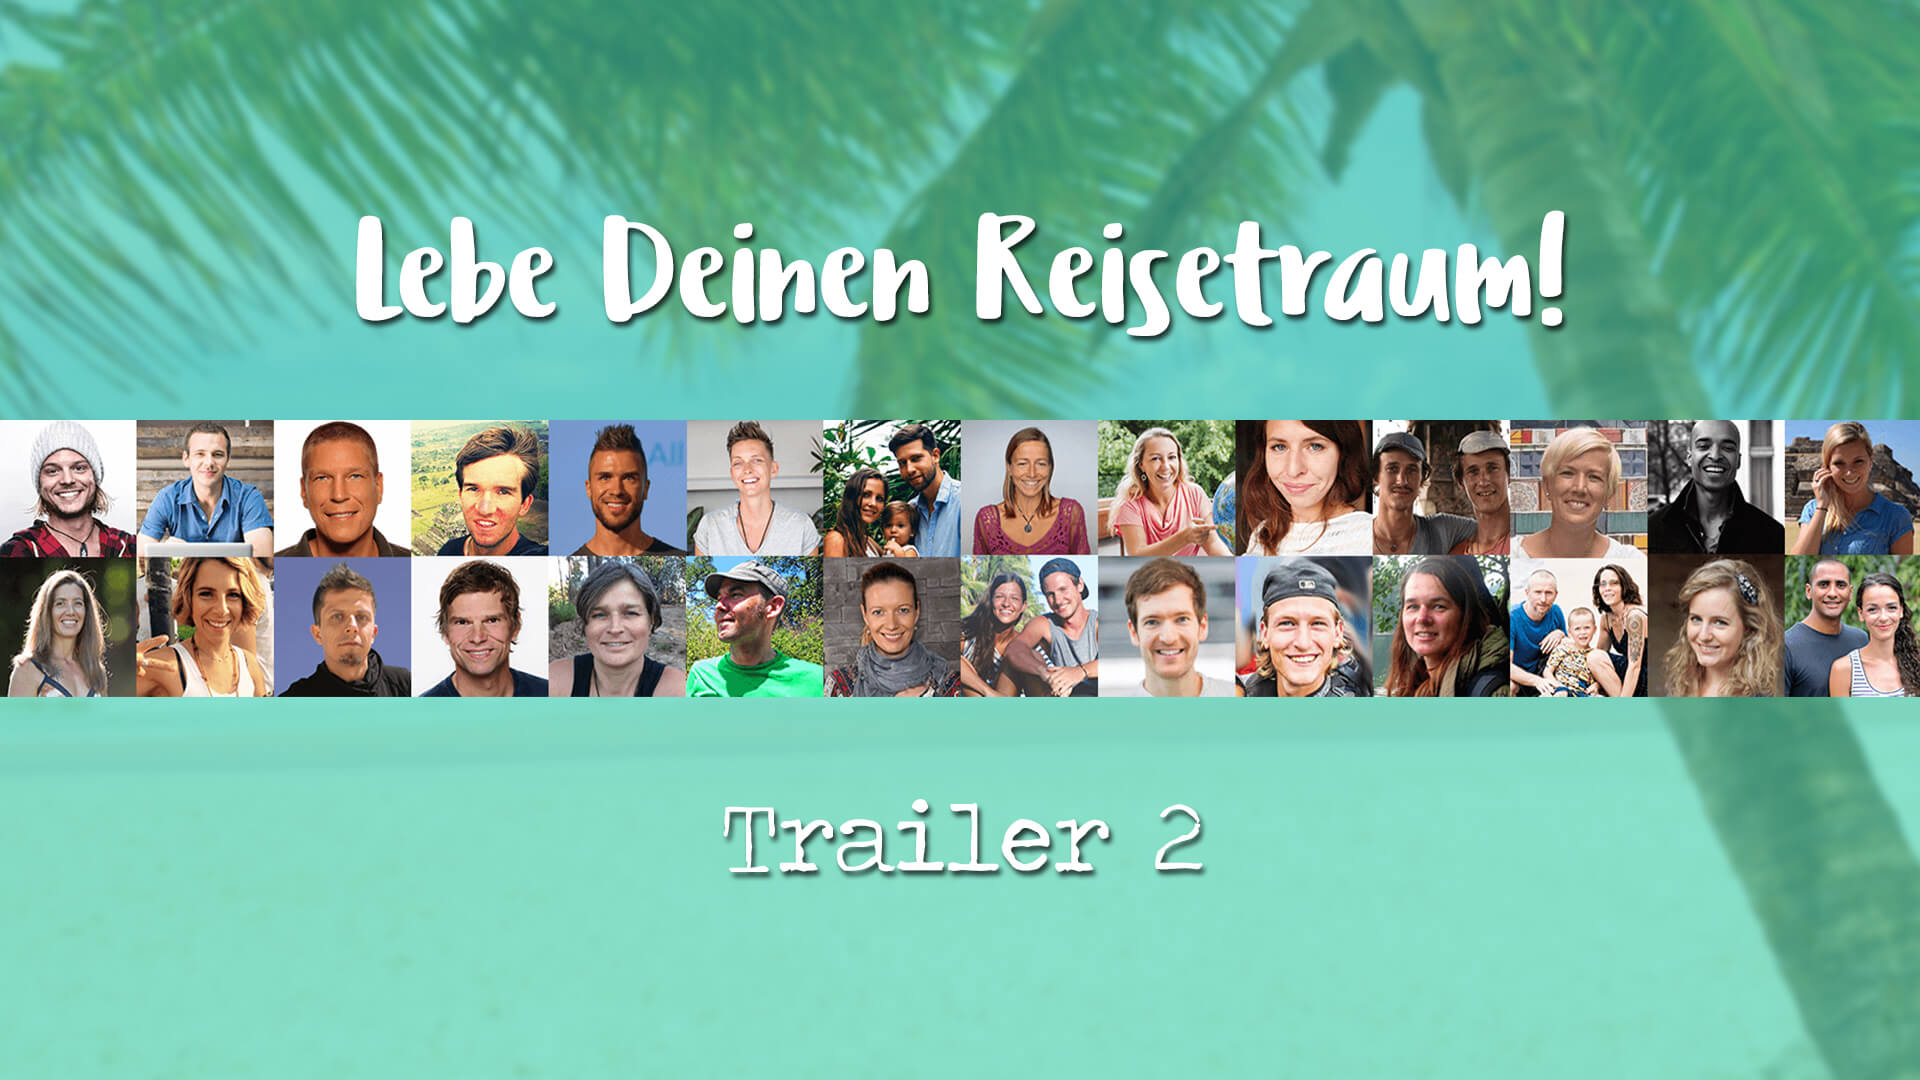 Trailer 2 - Link zur Video-Plattform Vimeo